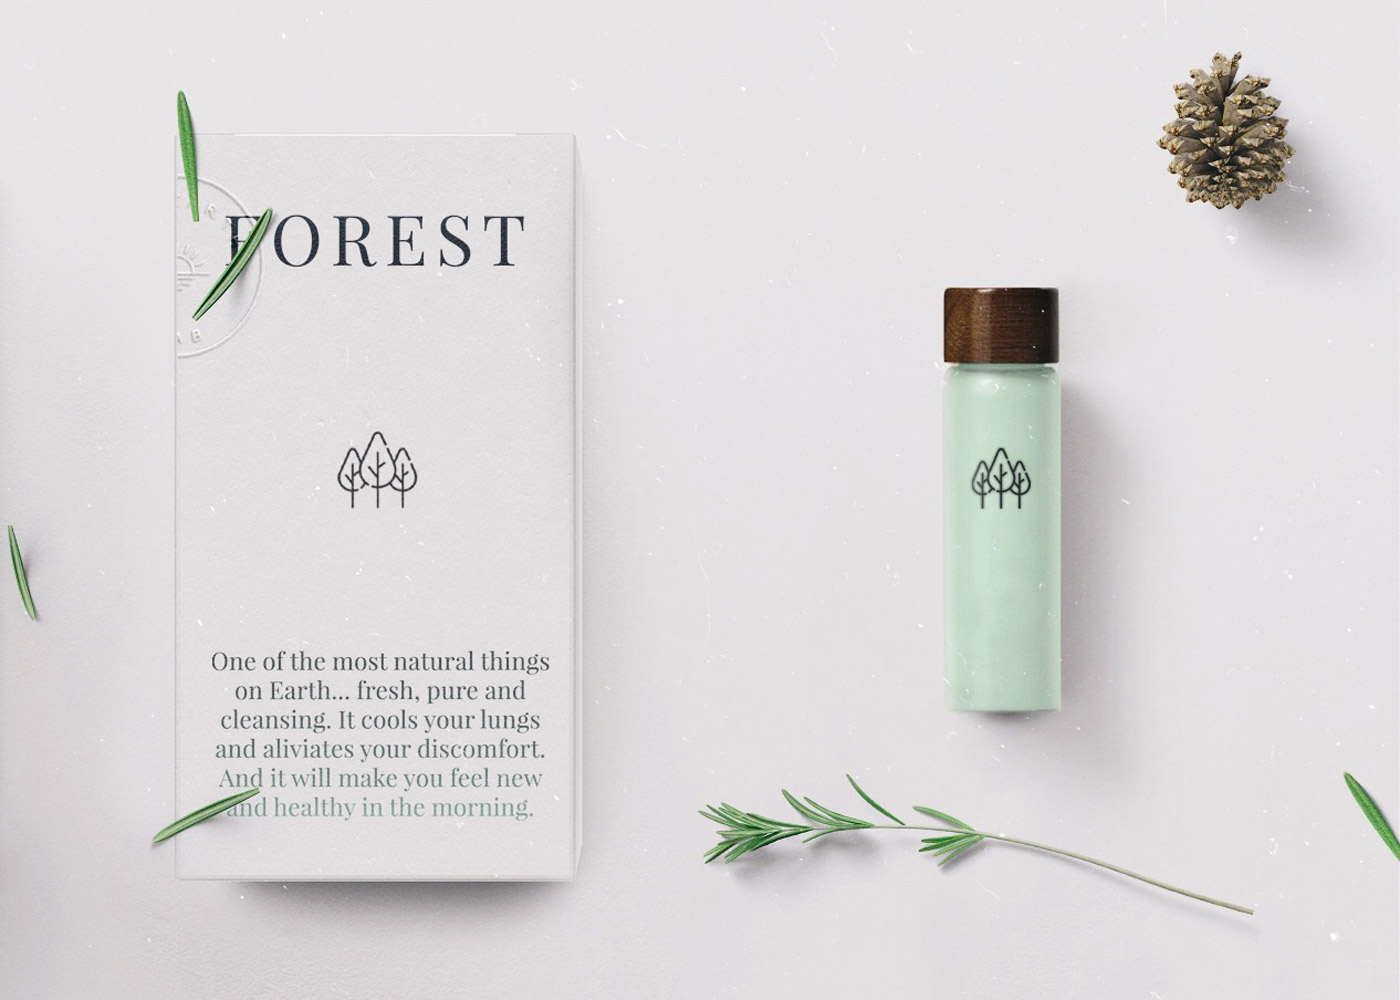 Forest smell